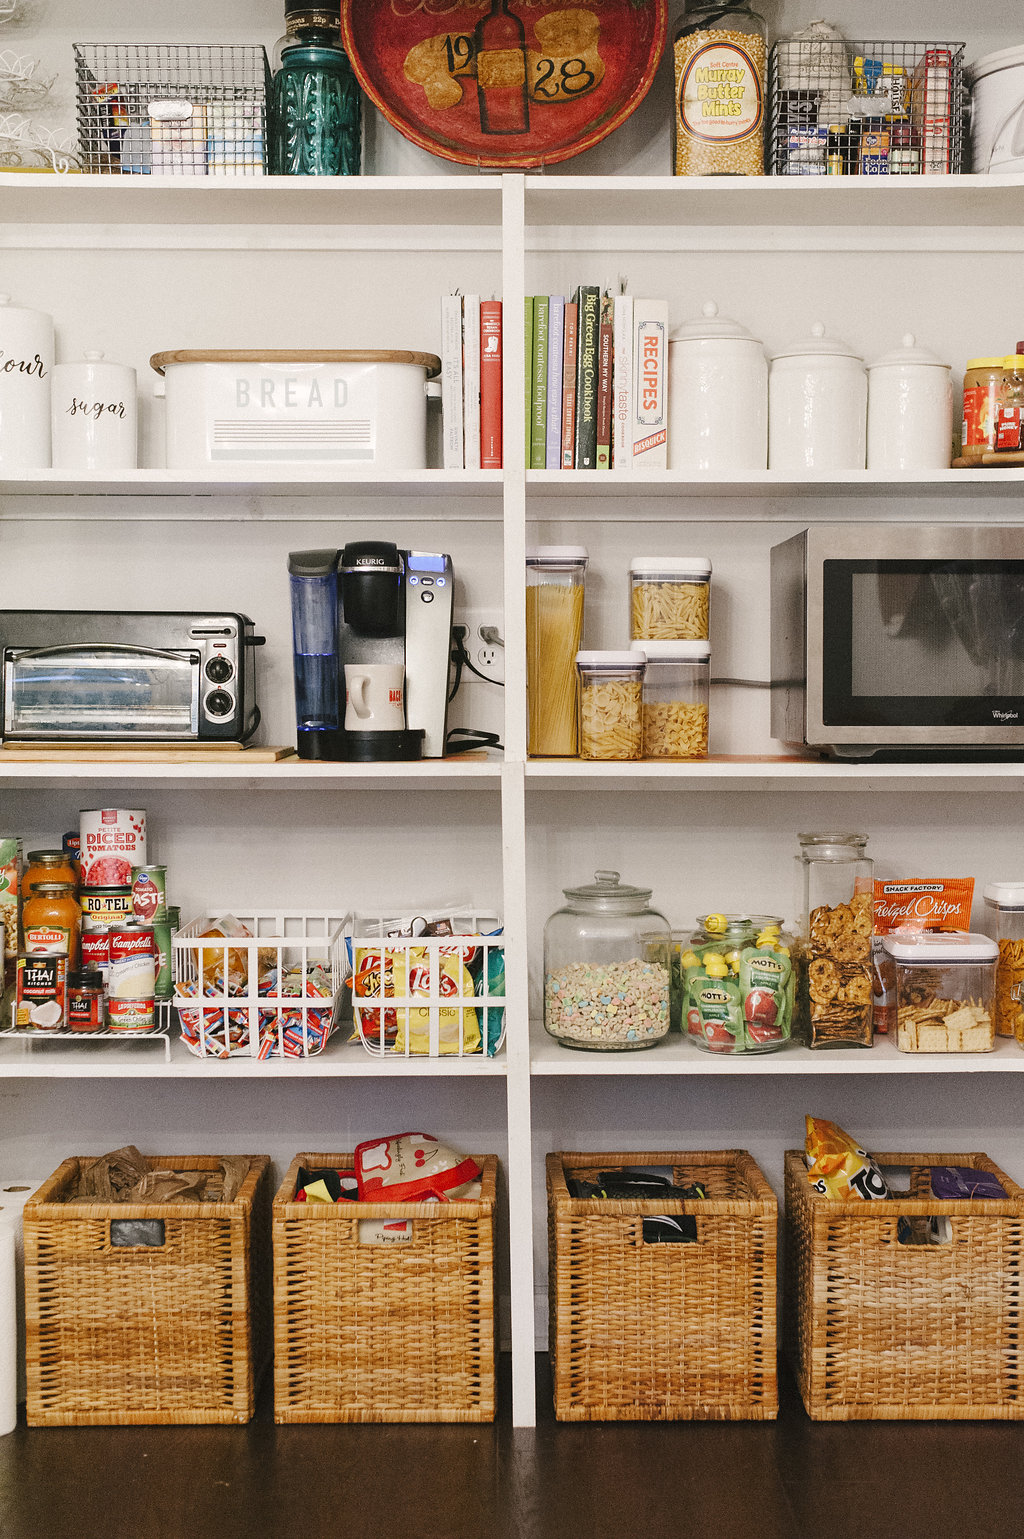 House-of-Von-Professional-Organizer-Pantry-Shelving.jpg